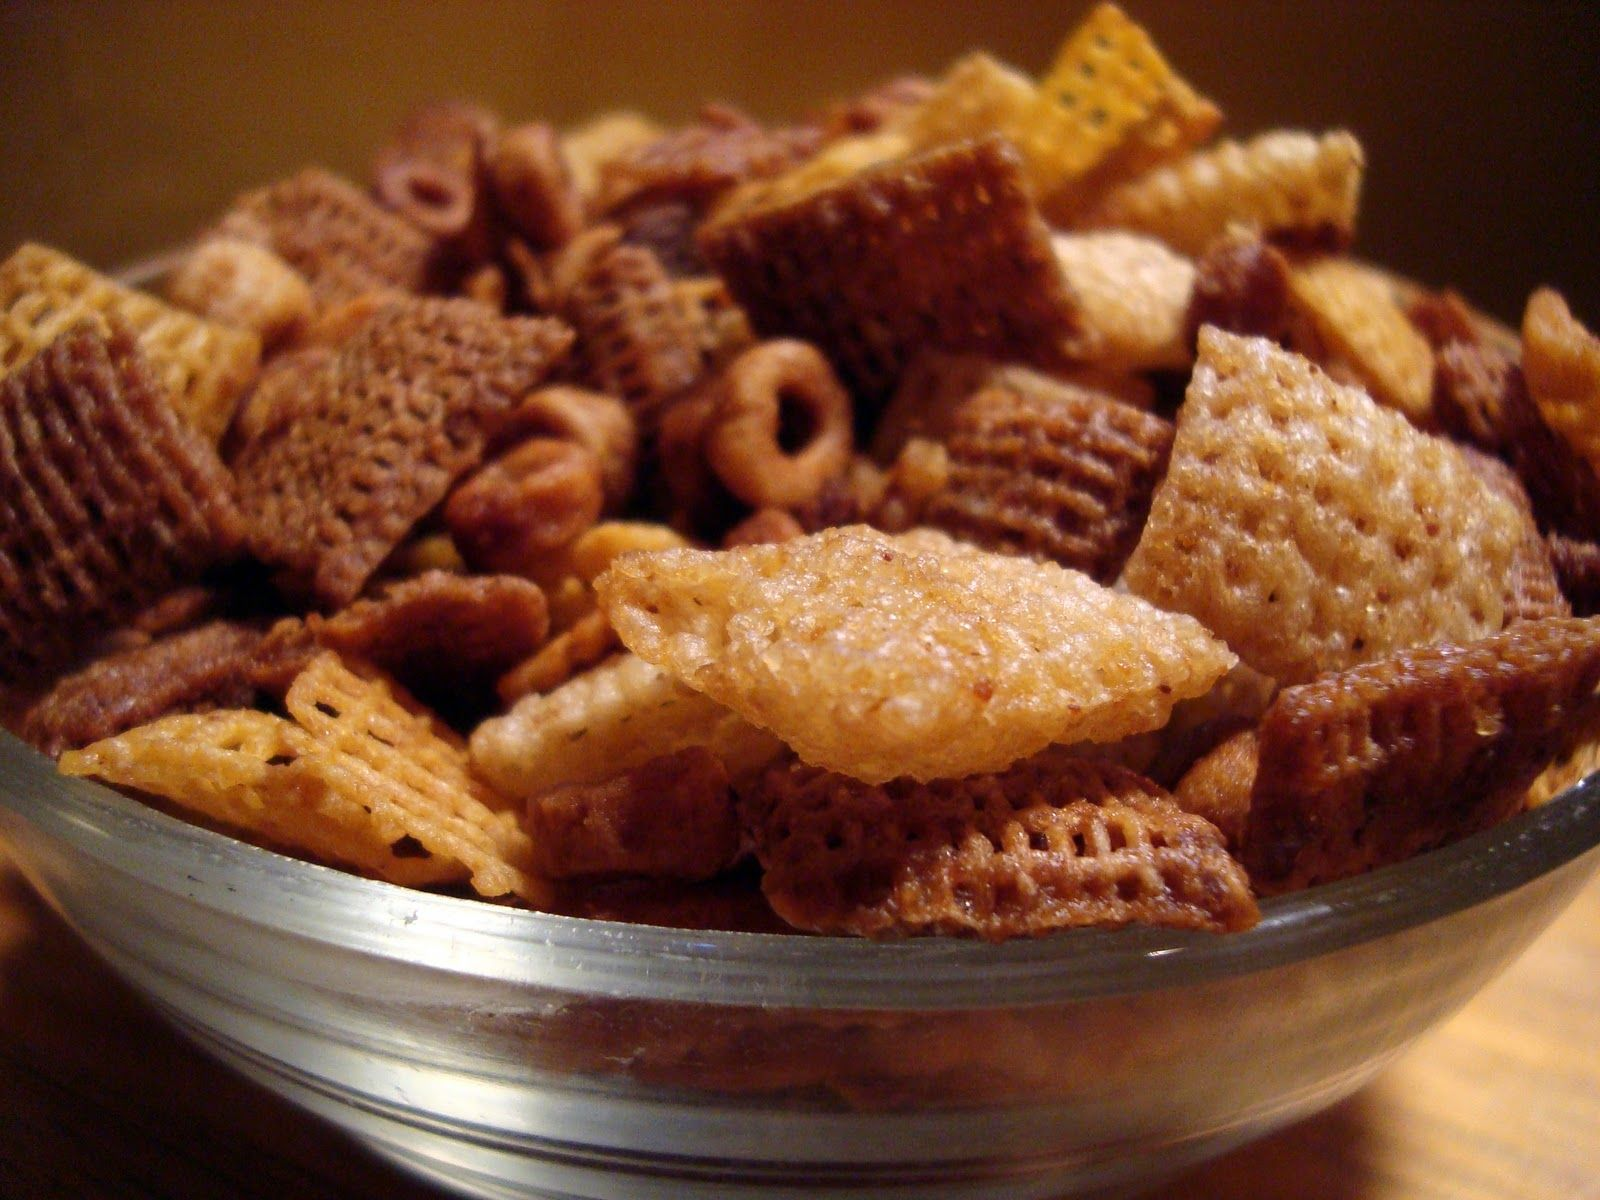 HOME MADE CHEX MIX WITH JUST MY FAVS